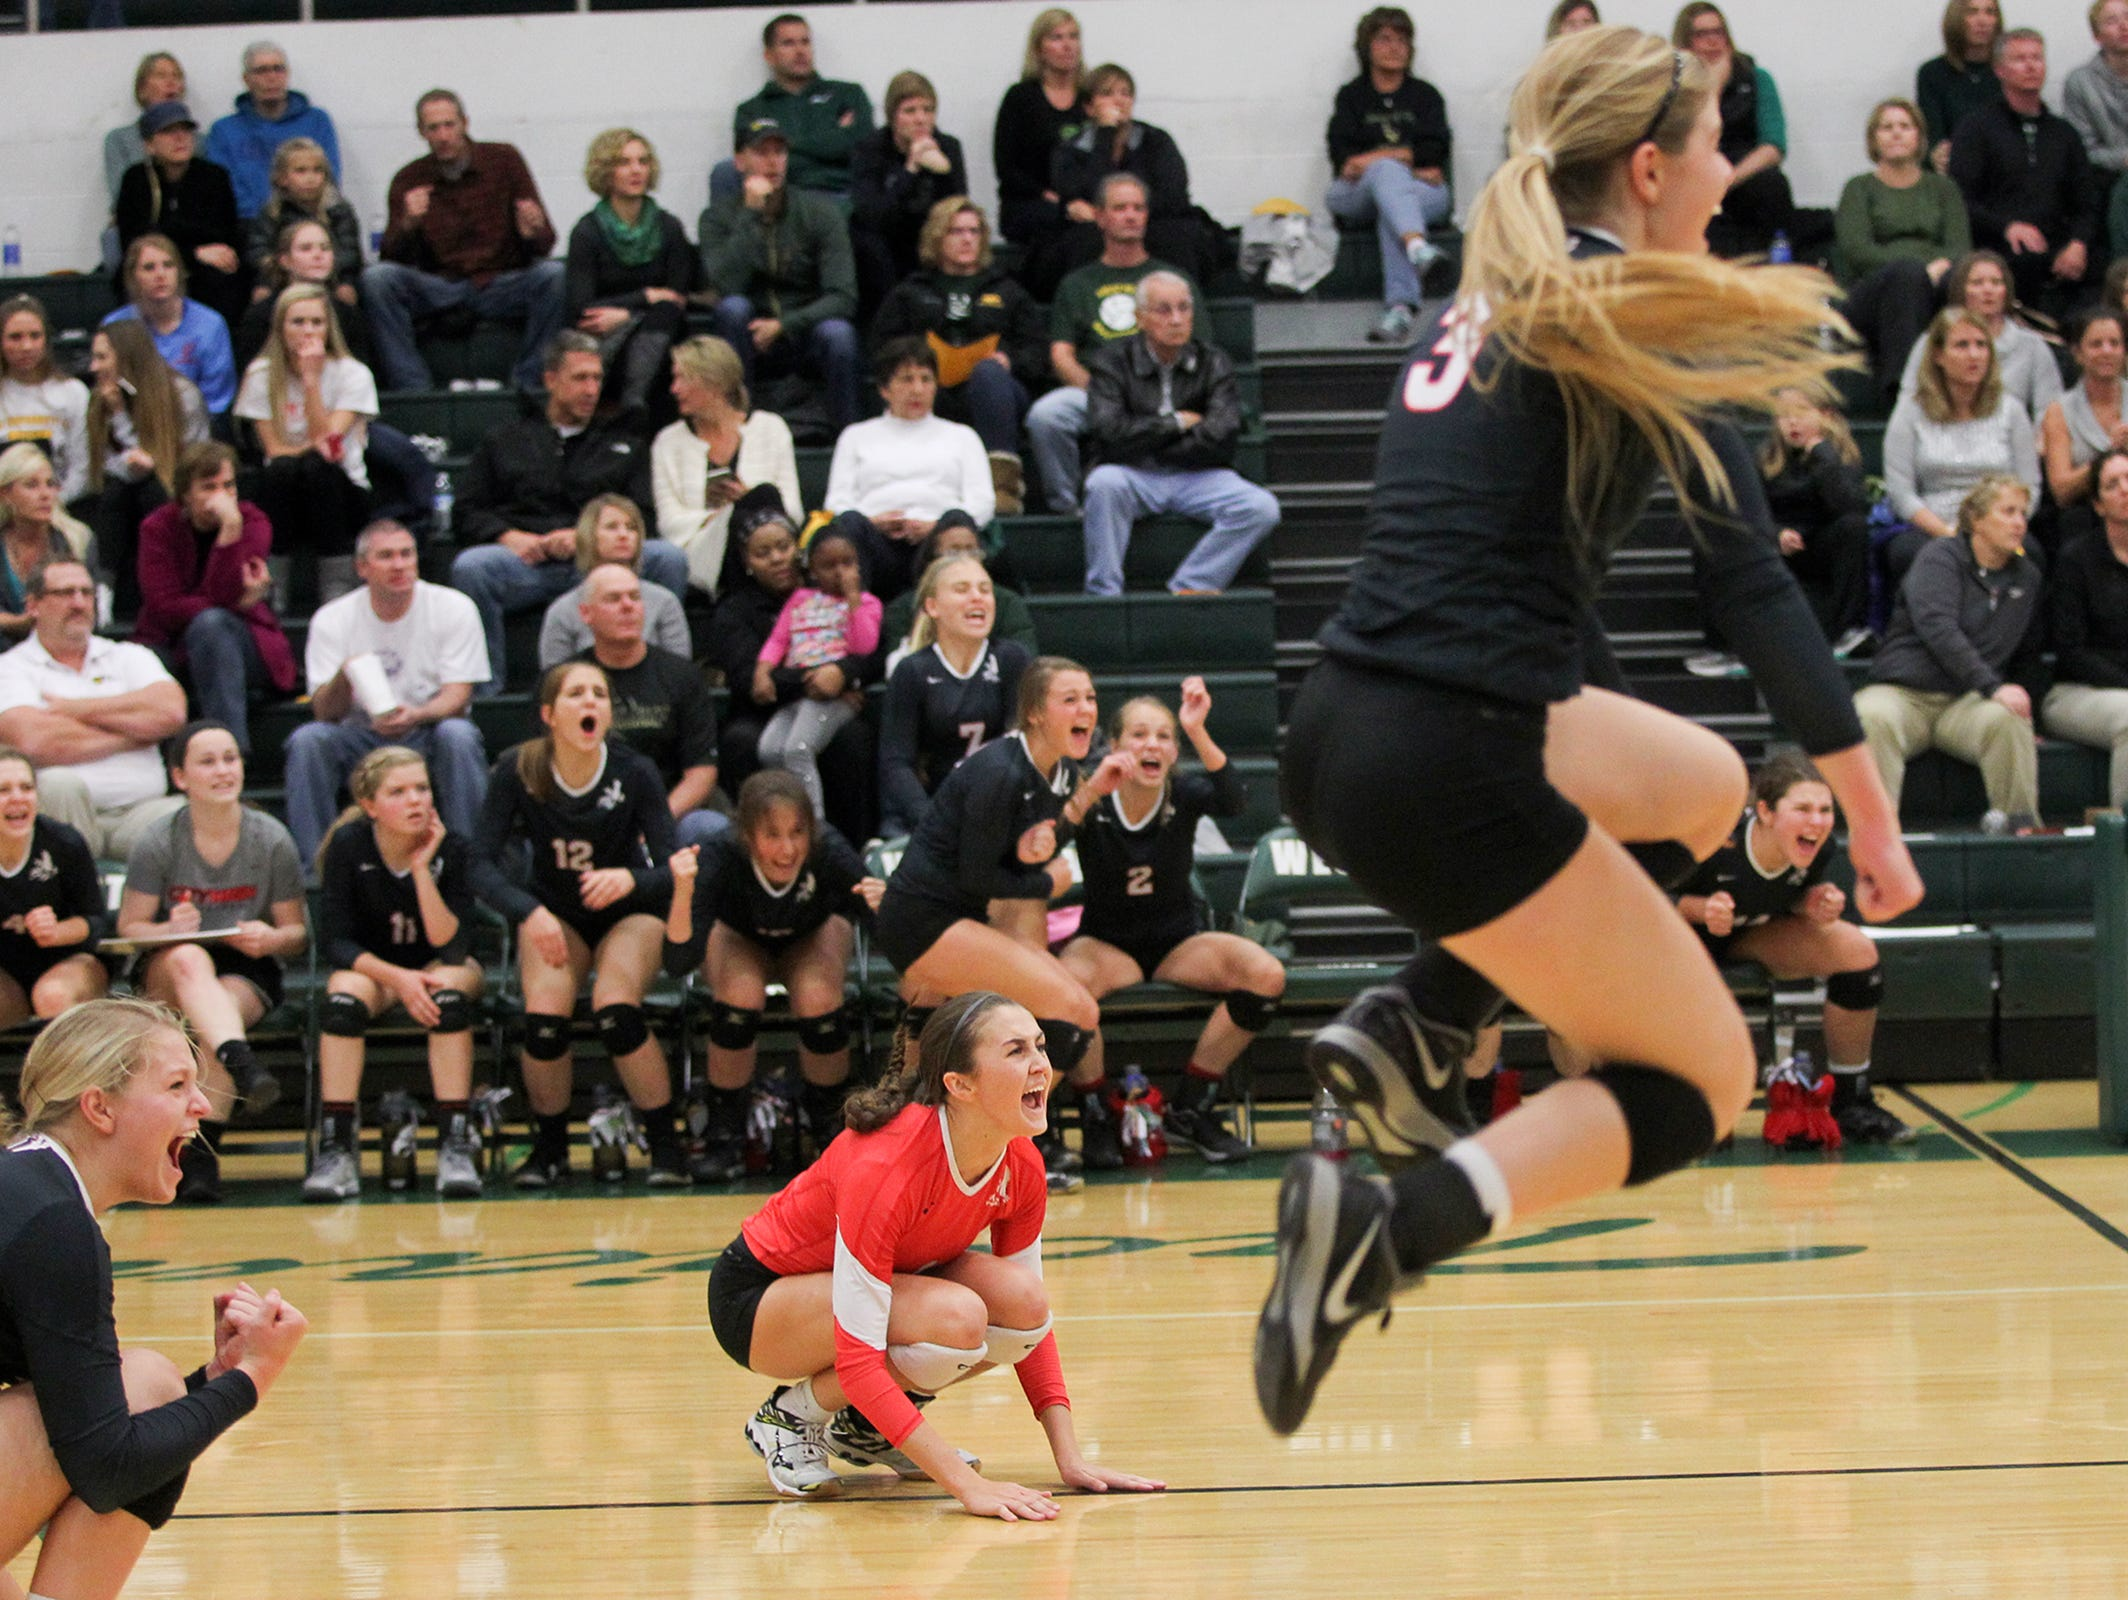 City High's Ashley Smith, center, celebrates a point during the Little Hawks' regional semifinal game at West High on Thursday, Oct. 29, 2015.